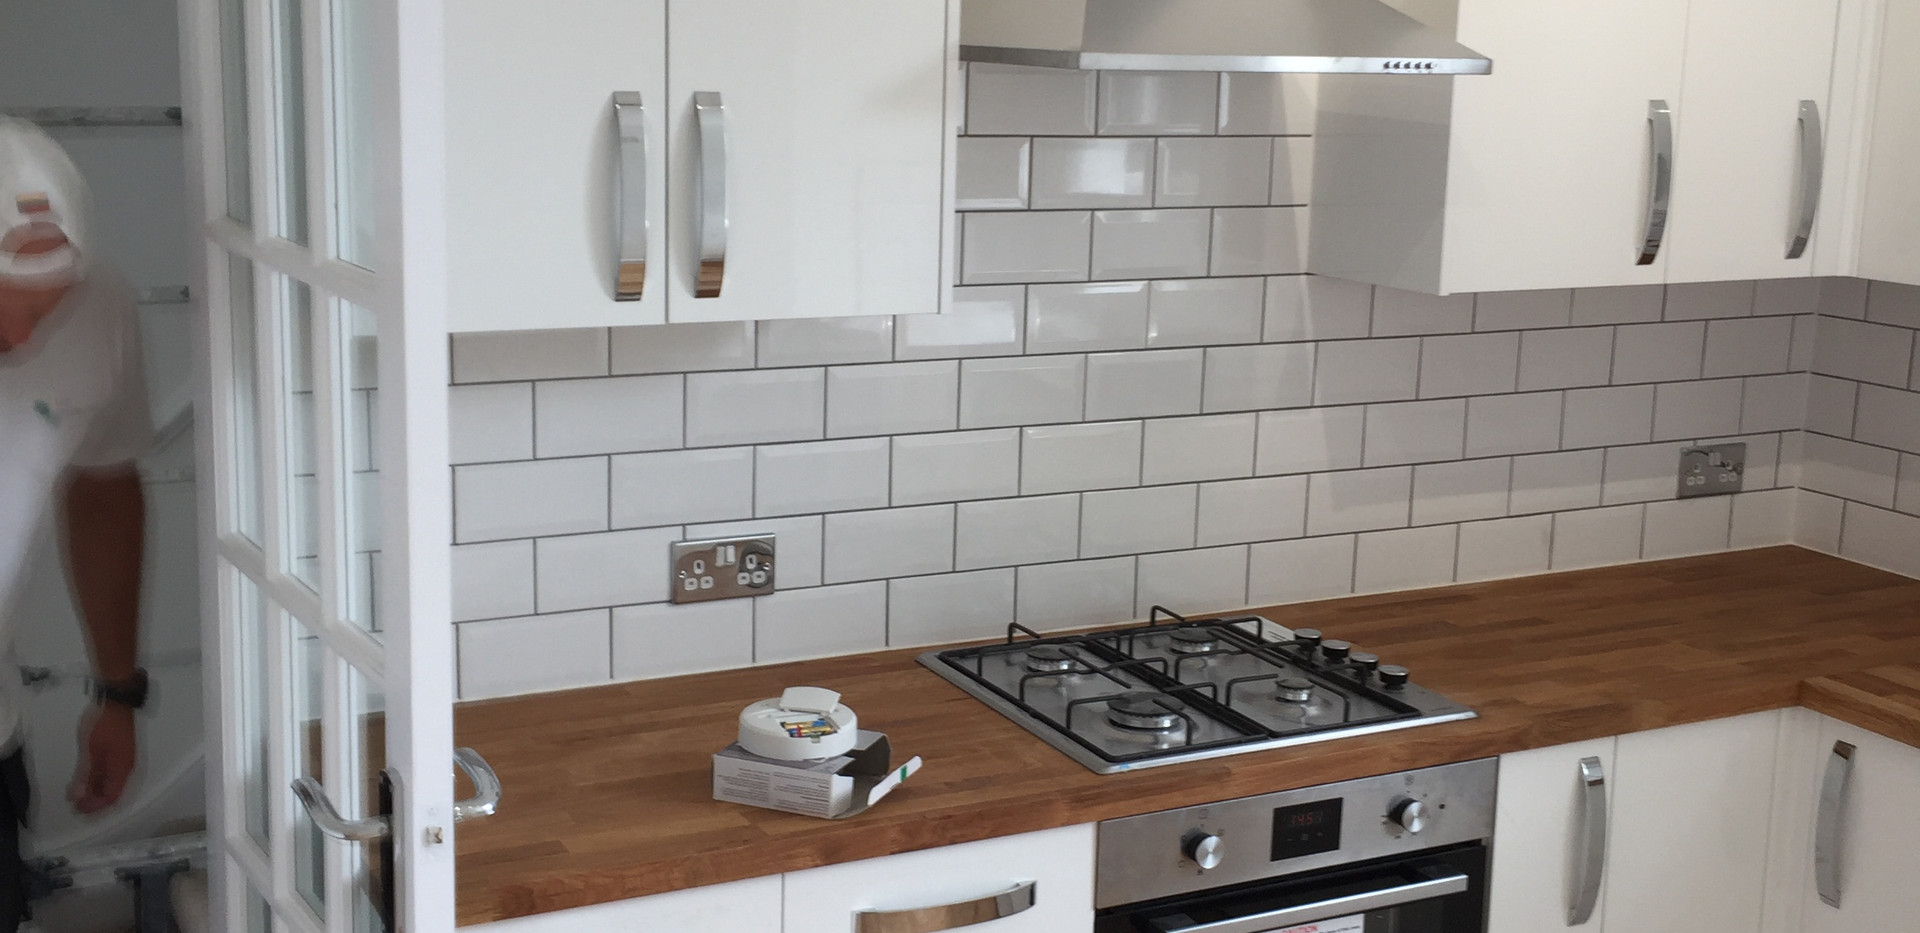 Kitchen tiled